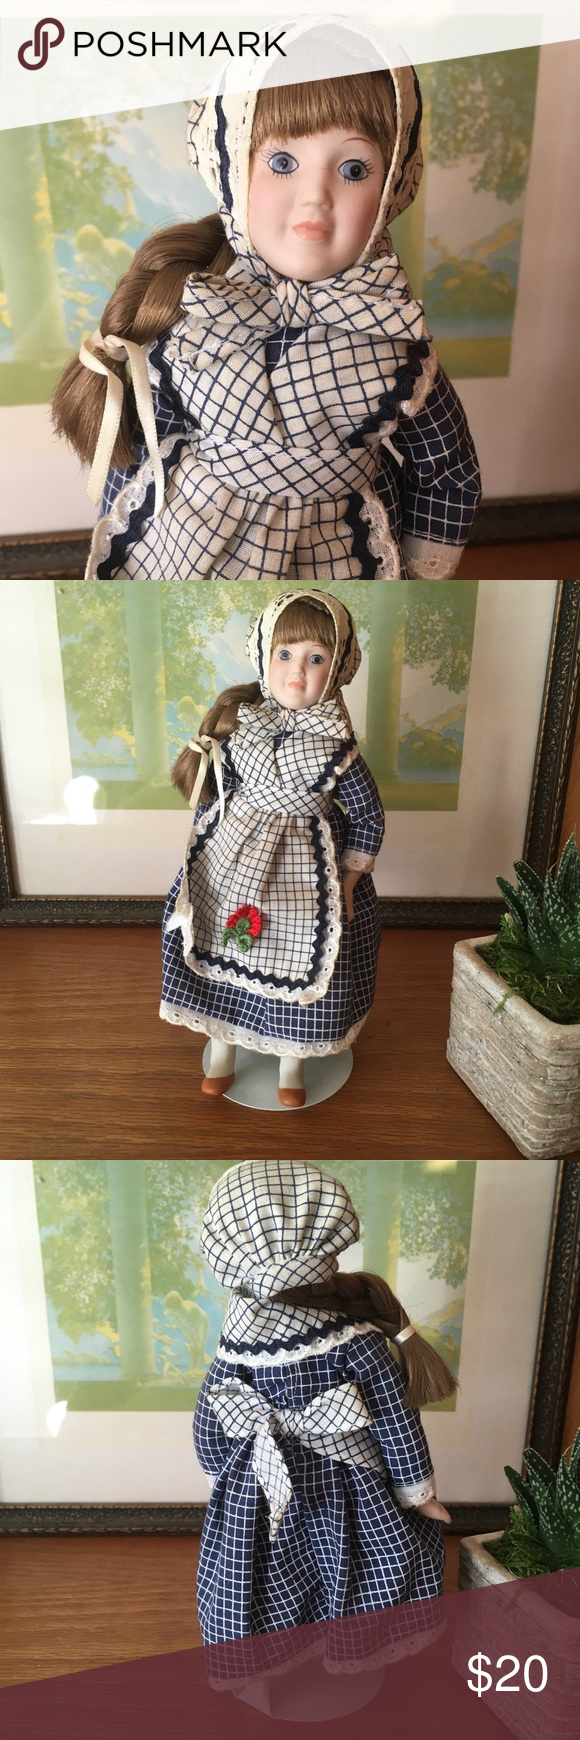 "Danbury Mint Bride Doll Cale of Denmark 9"" Danbury Mint Bride Dolls of the World ""Cale of Denmark"" doll. Very good vintage condition. Vintage Accents Decor #bridedolls"